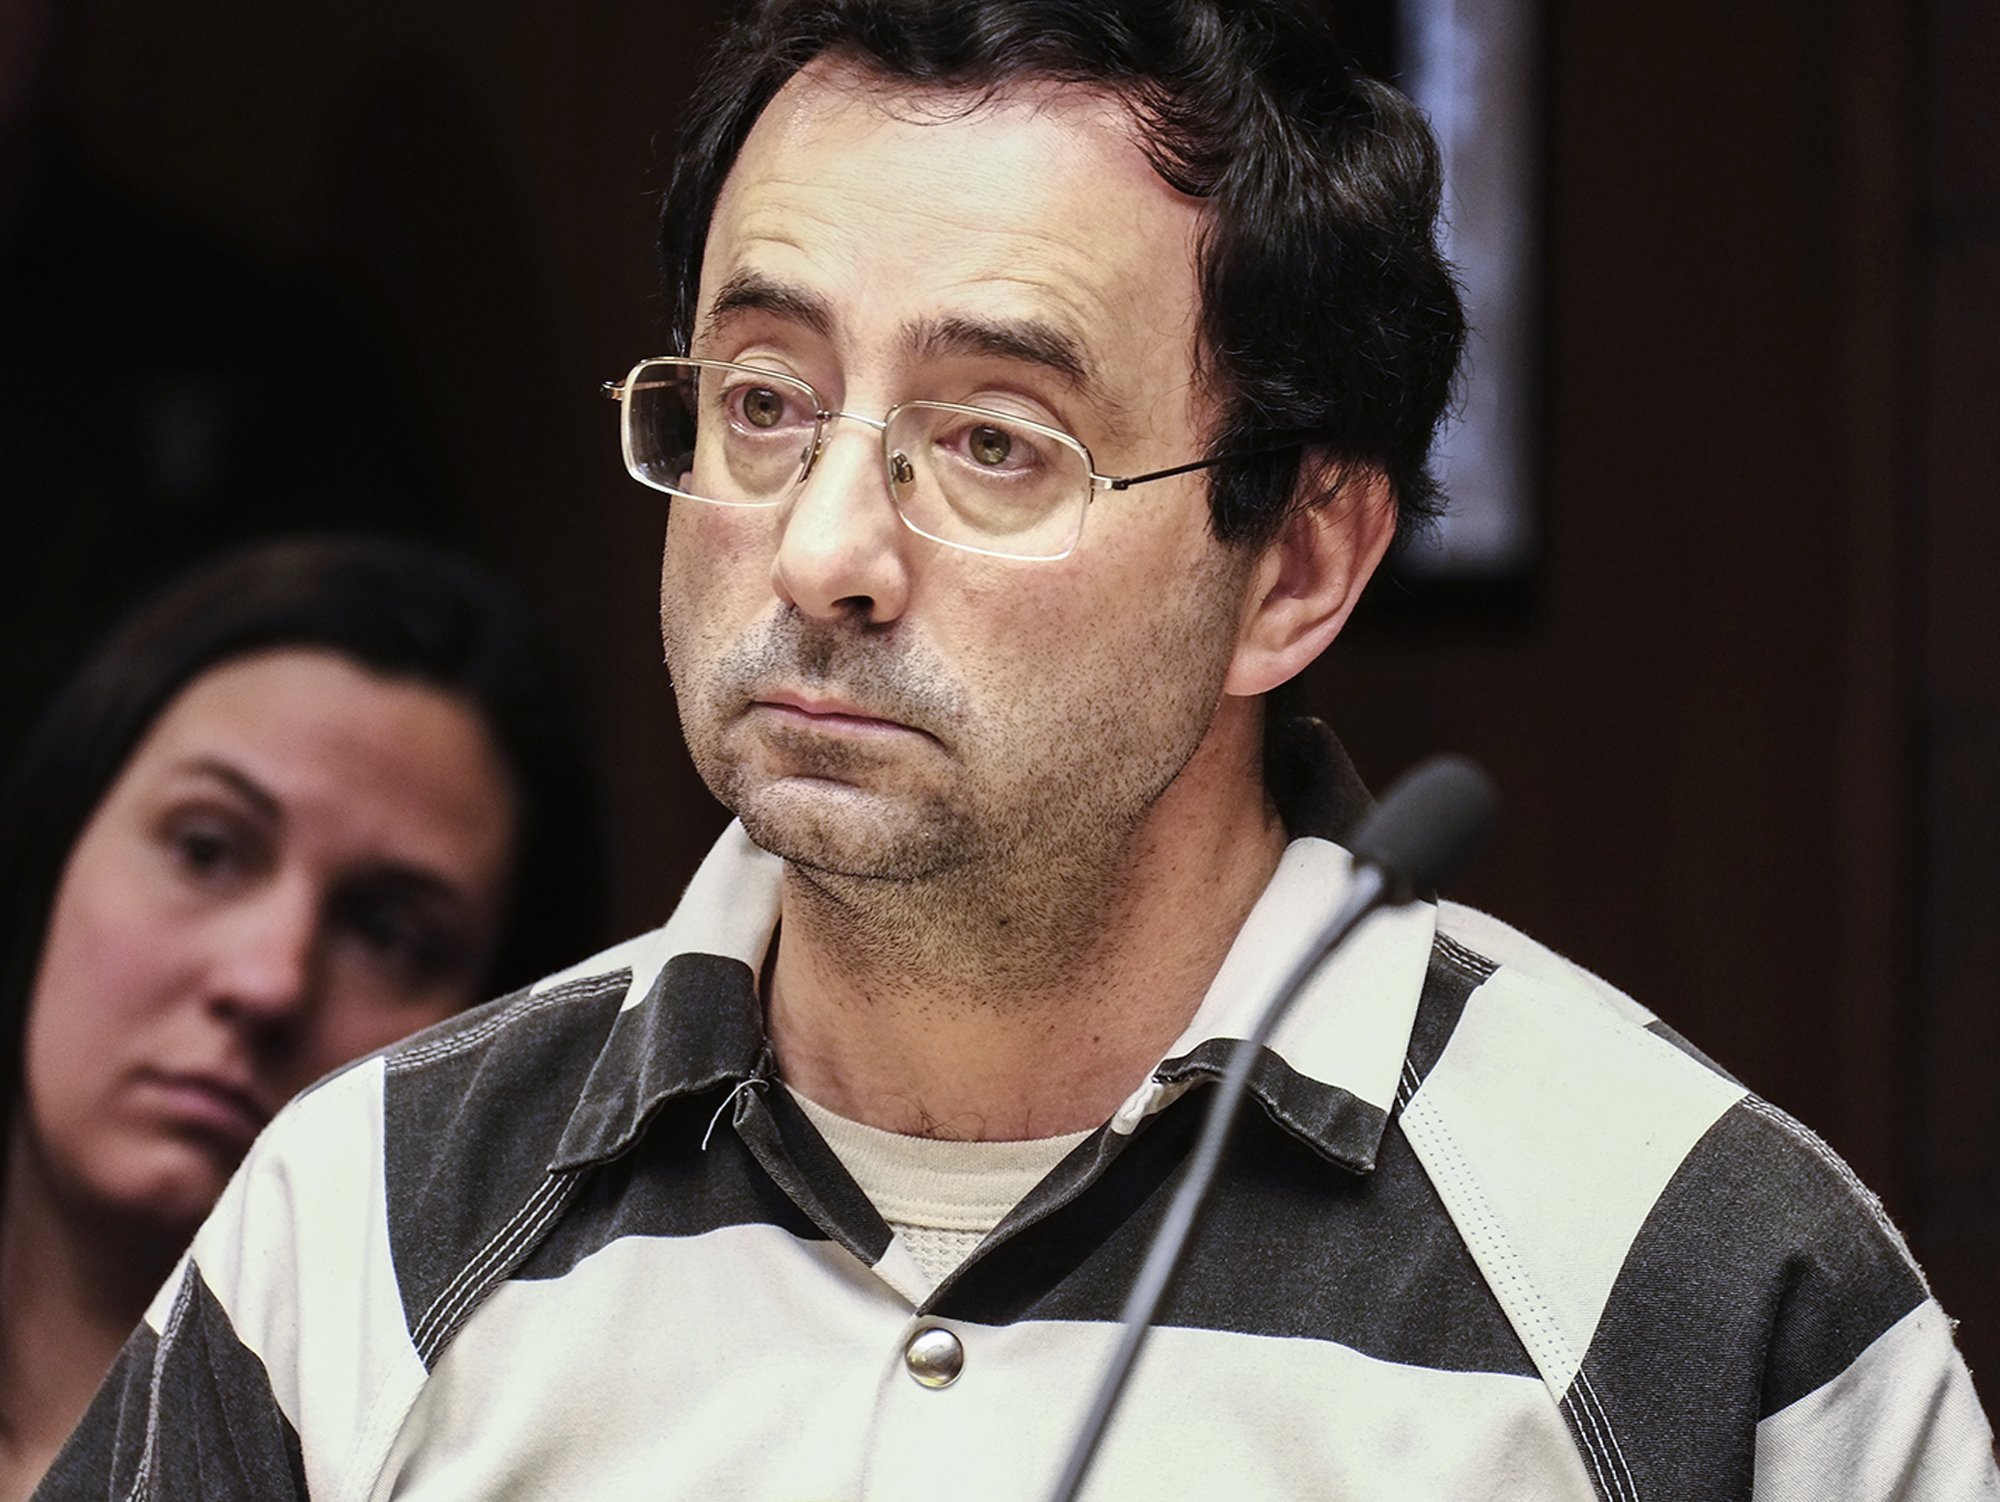 Michigan sports doctor to stand trial in sexual assault case